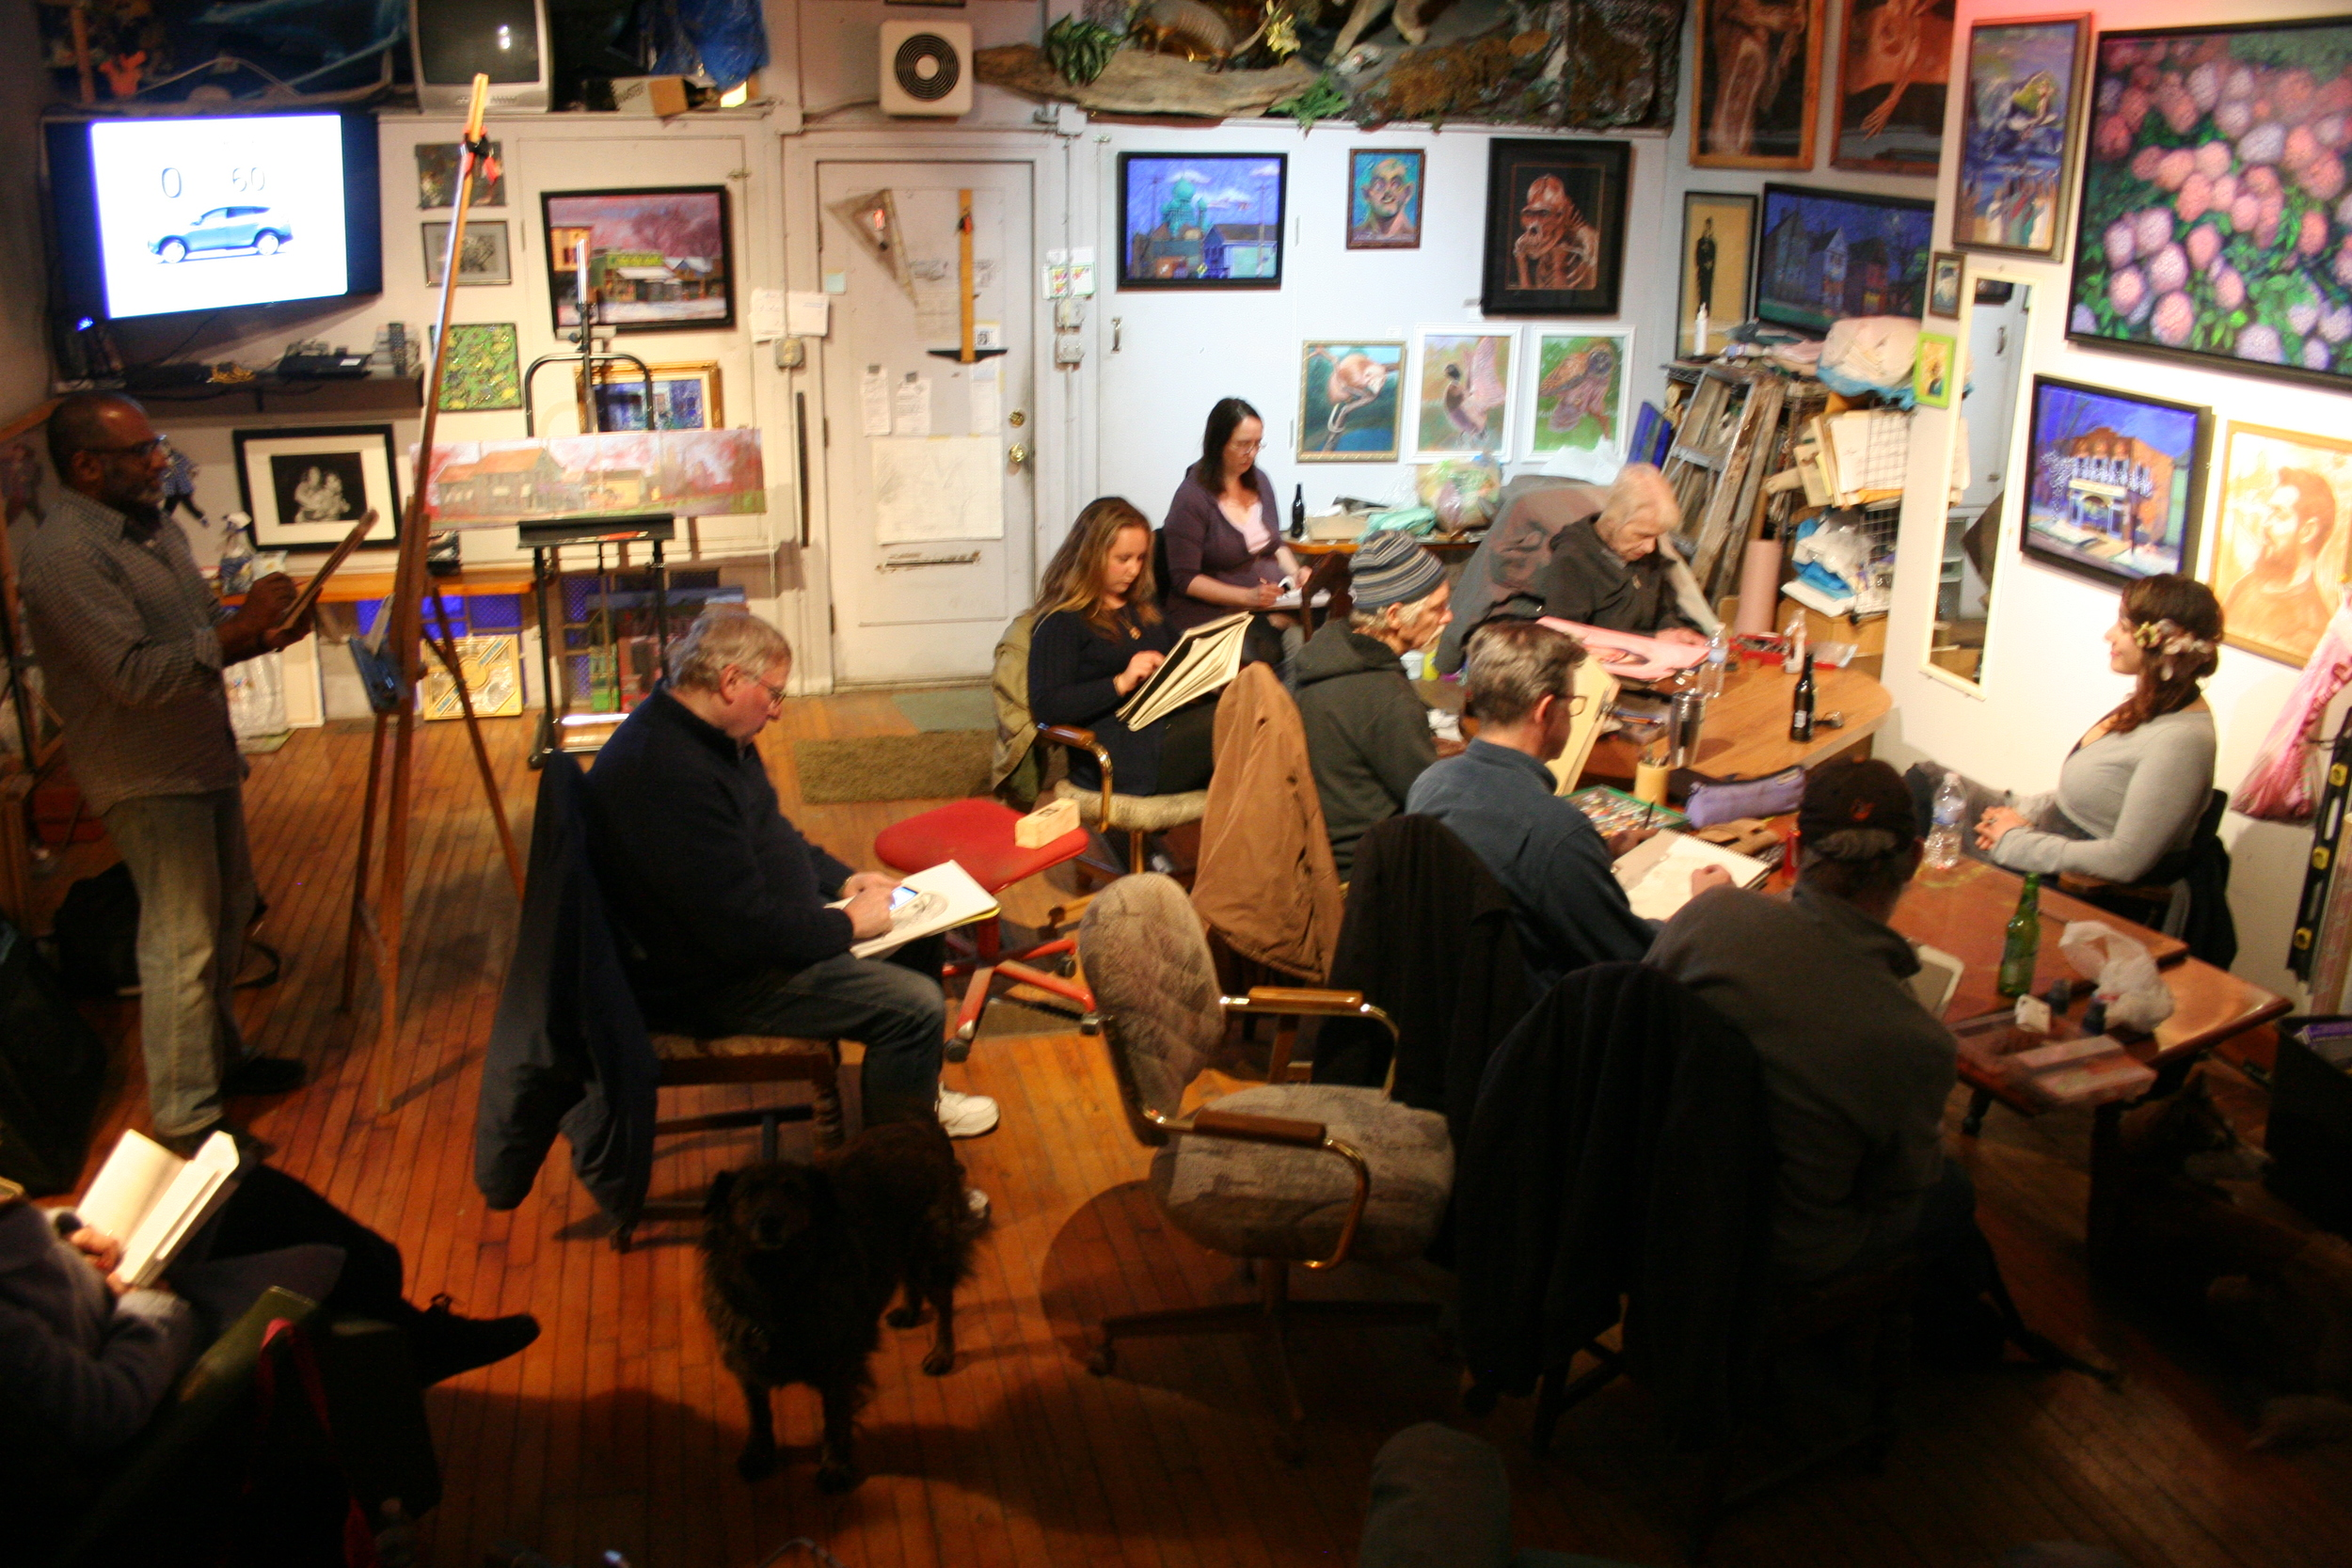 On occasion when the Literary Cafe is closed we generally draw at Tim Herron's studio.